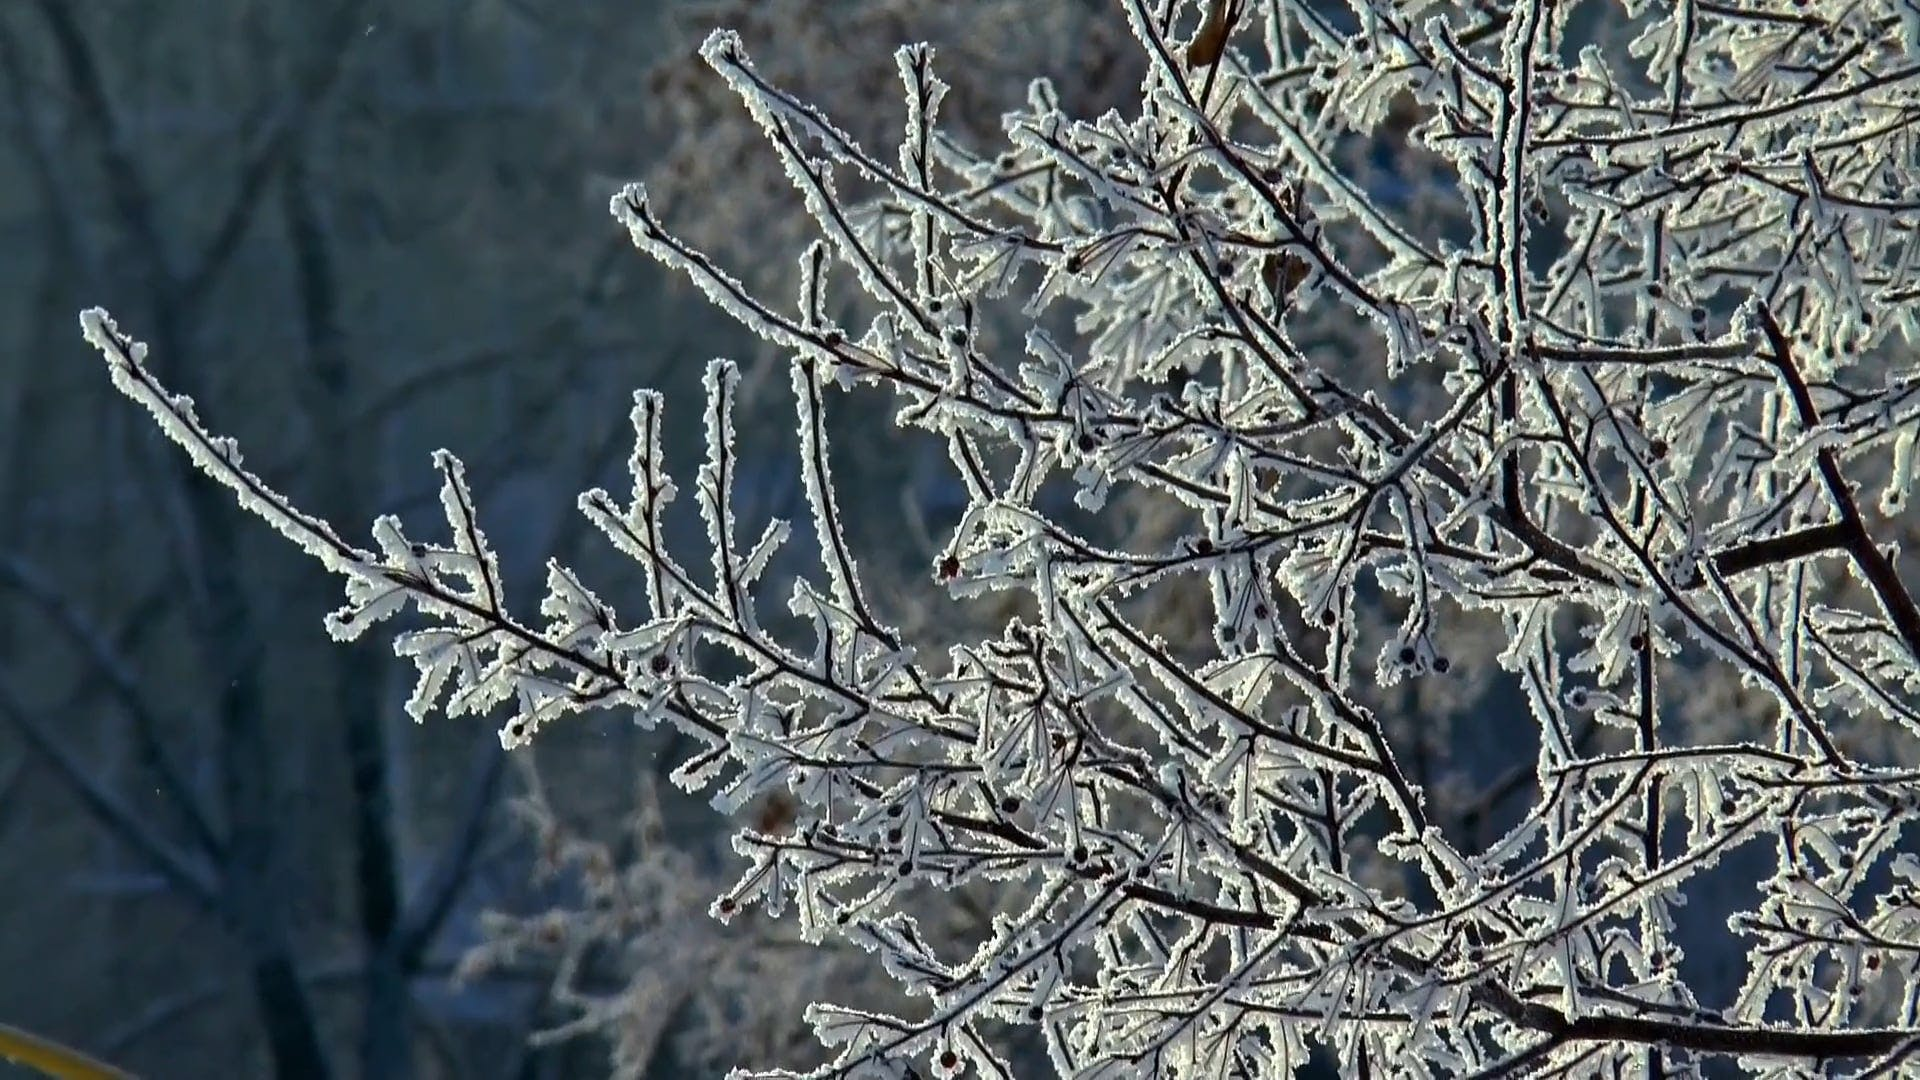 Close-Up Video Of Snowcapped Branches